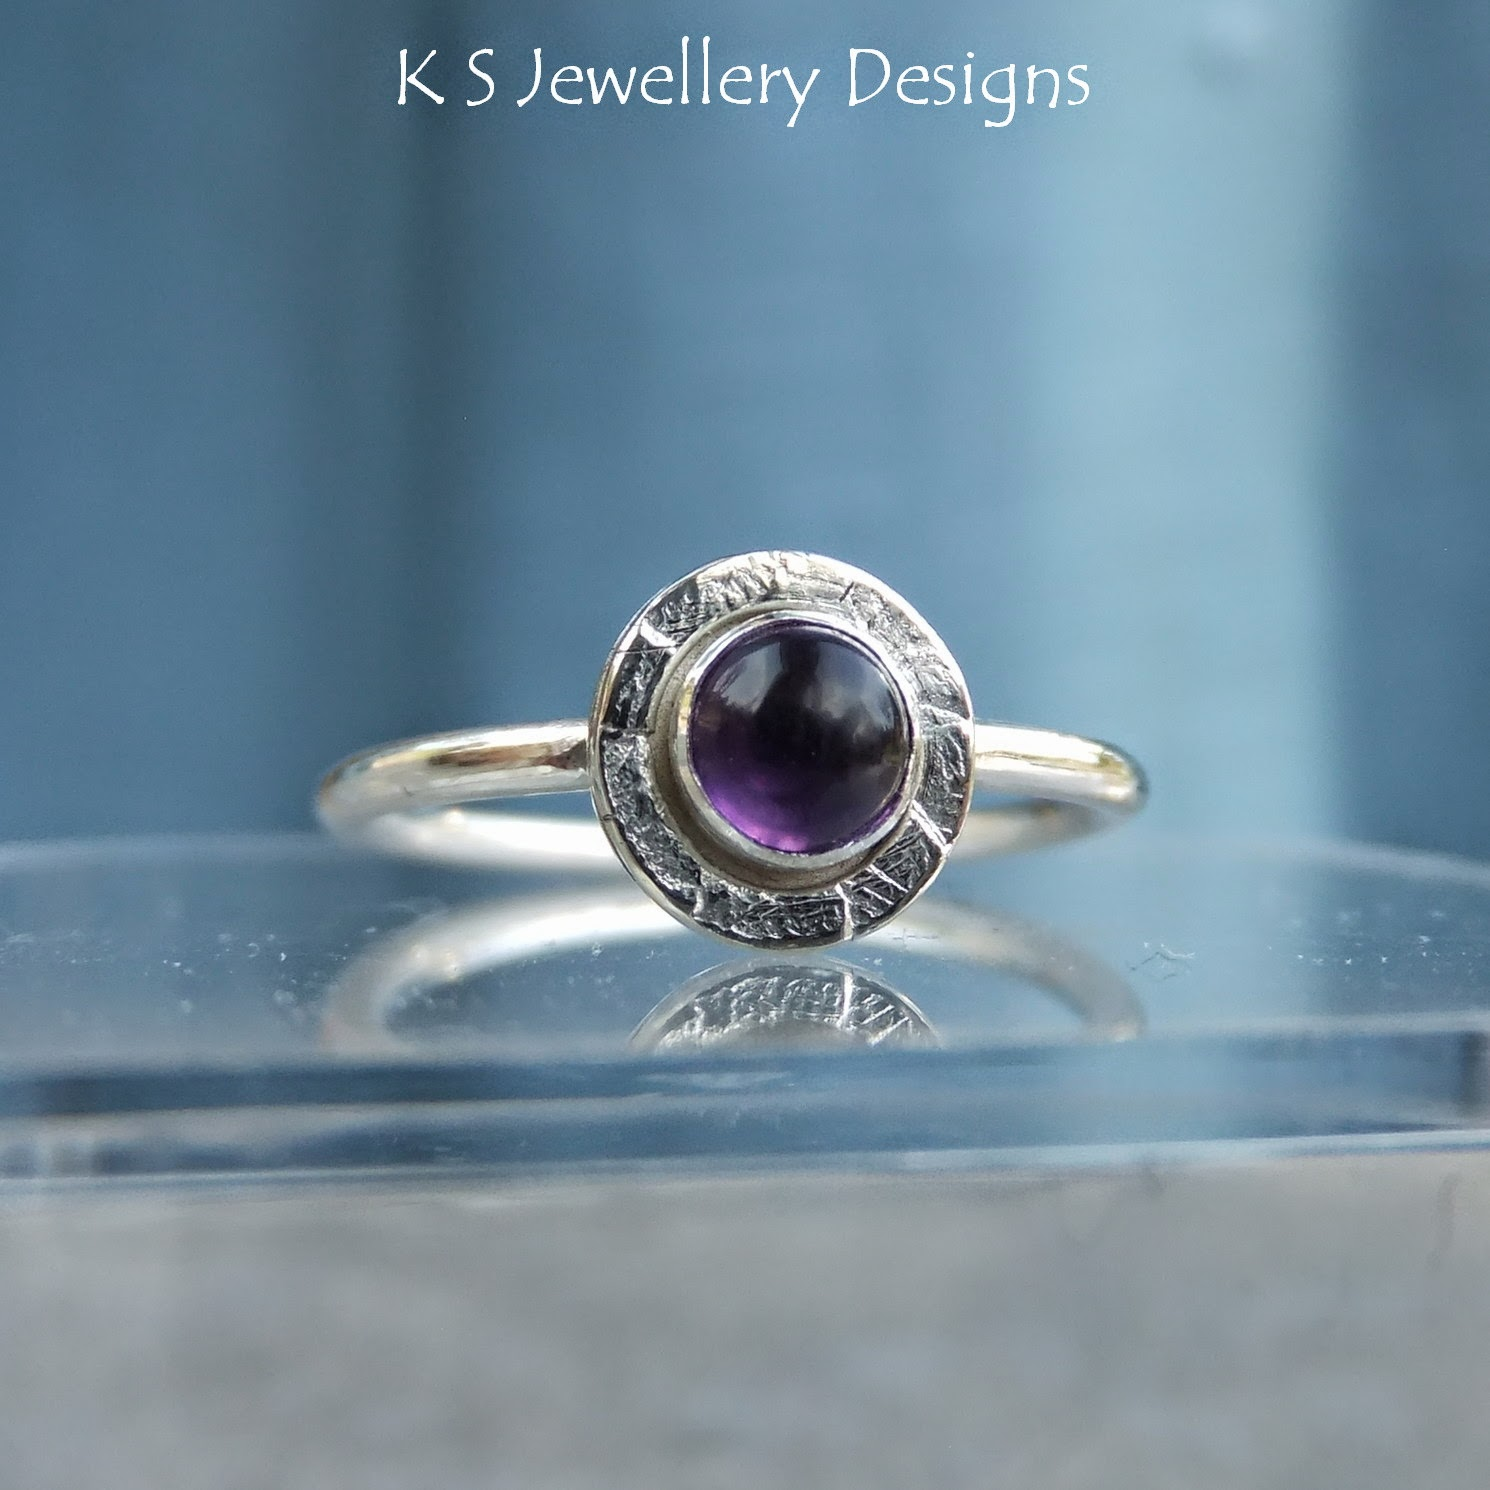 http://ksjewellerydesigns.co.uk/ourshop/prod_3225624-Amethyst-Sterling-Silver-Stacking-Gemstone-Ring-MADE-TO-ORDER.html